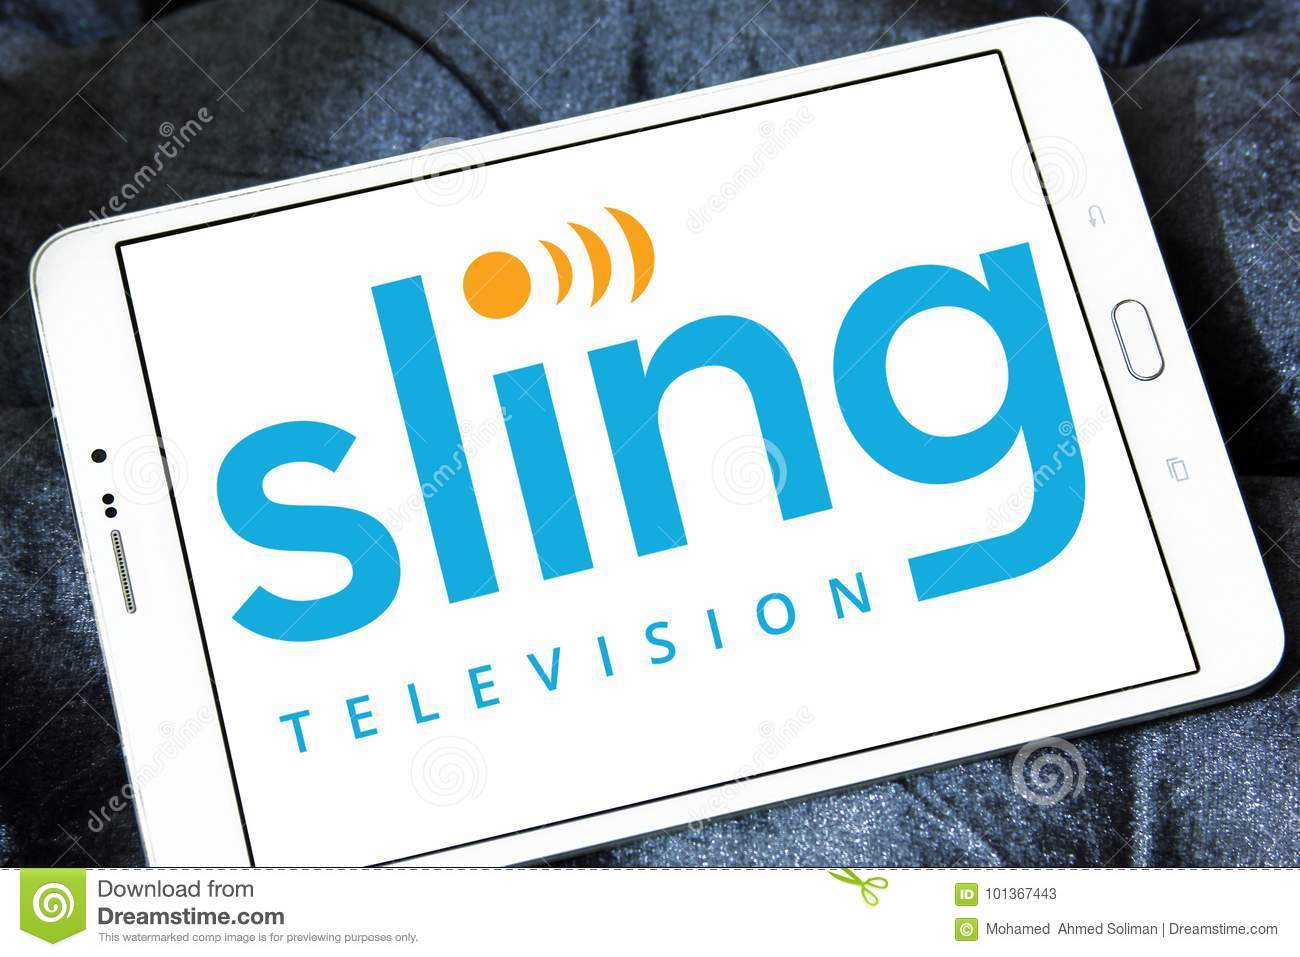 Sling Tv Samsung >> Sling Tv Logo Editorial Stock Photo Image Of Hulu Other 101367443